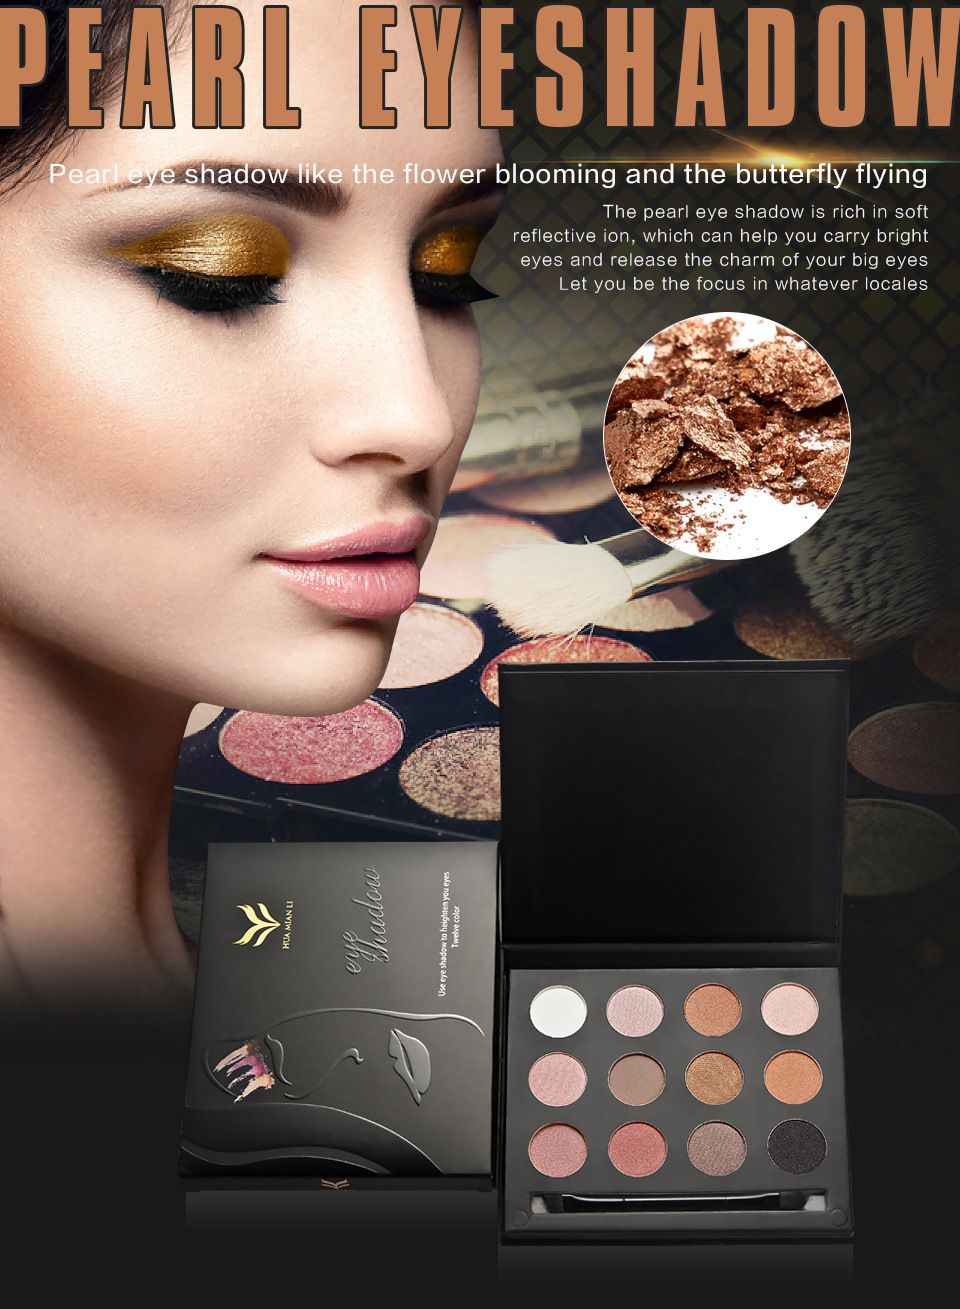 Eyeshadow Powder Makeup http//bit.ly/2Eyeshadow?utm